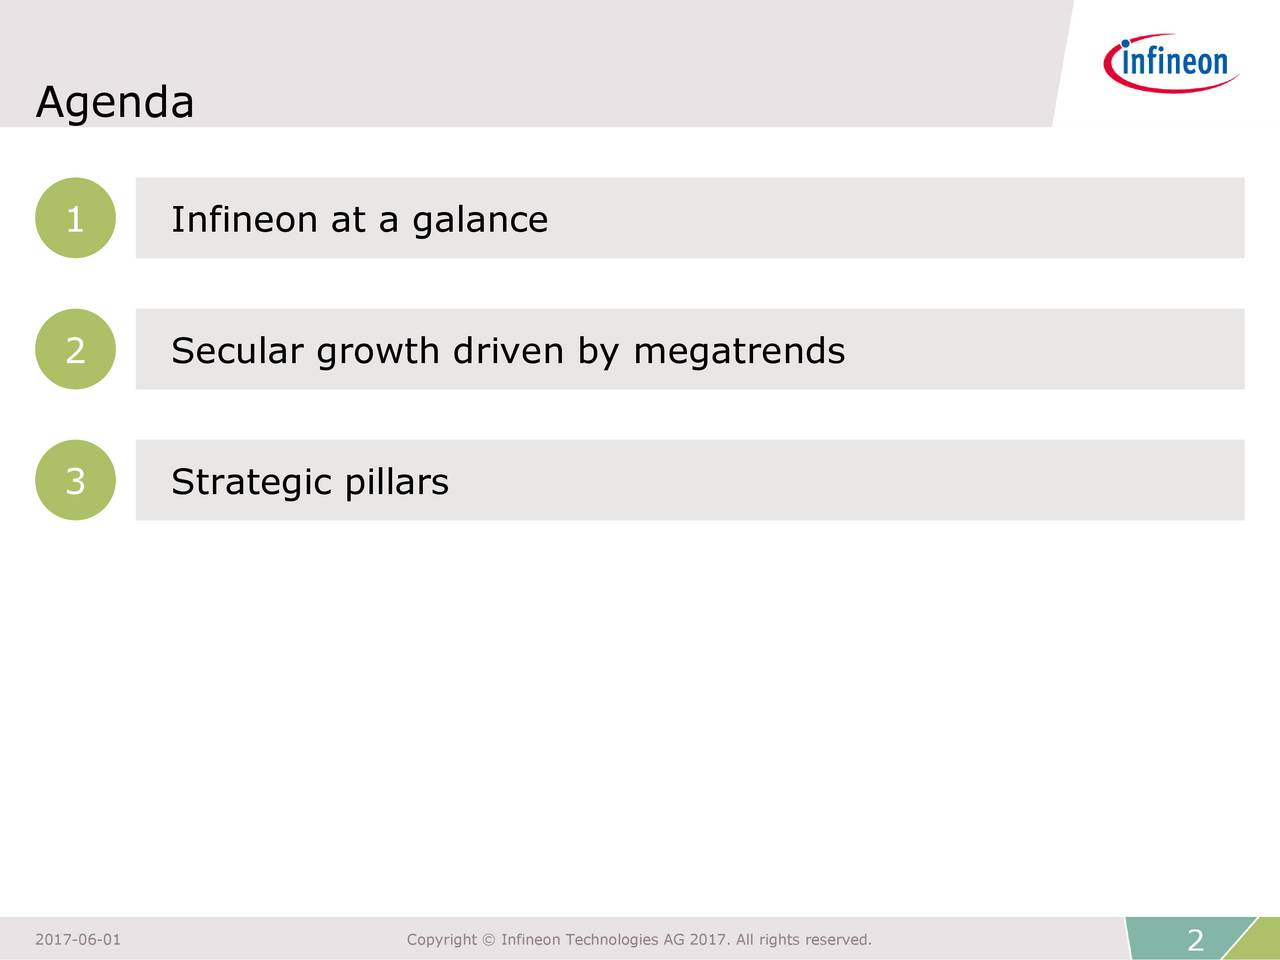 1 Infineon at a galance 2 Secular growth driven by megatrends 3 Strategic pillars